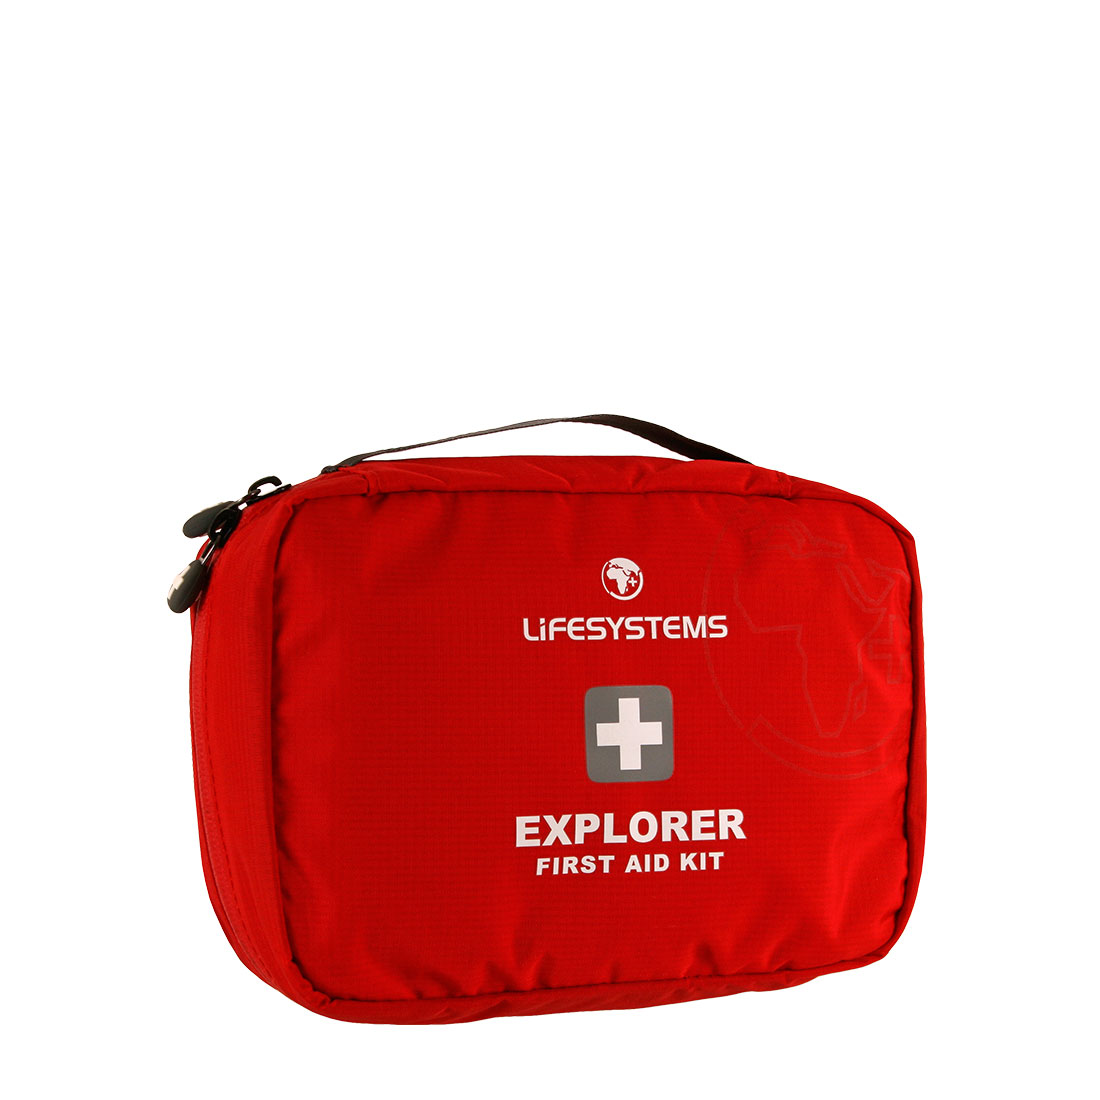 1035-explorer-first-aid-kit-1